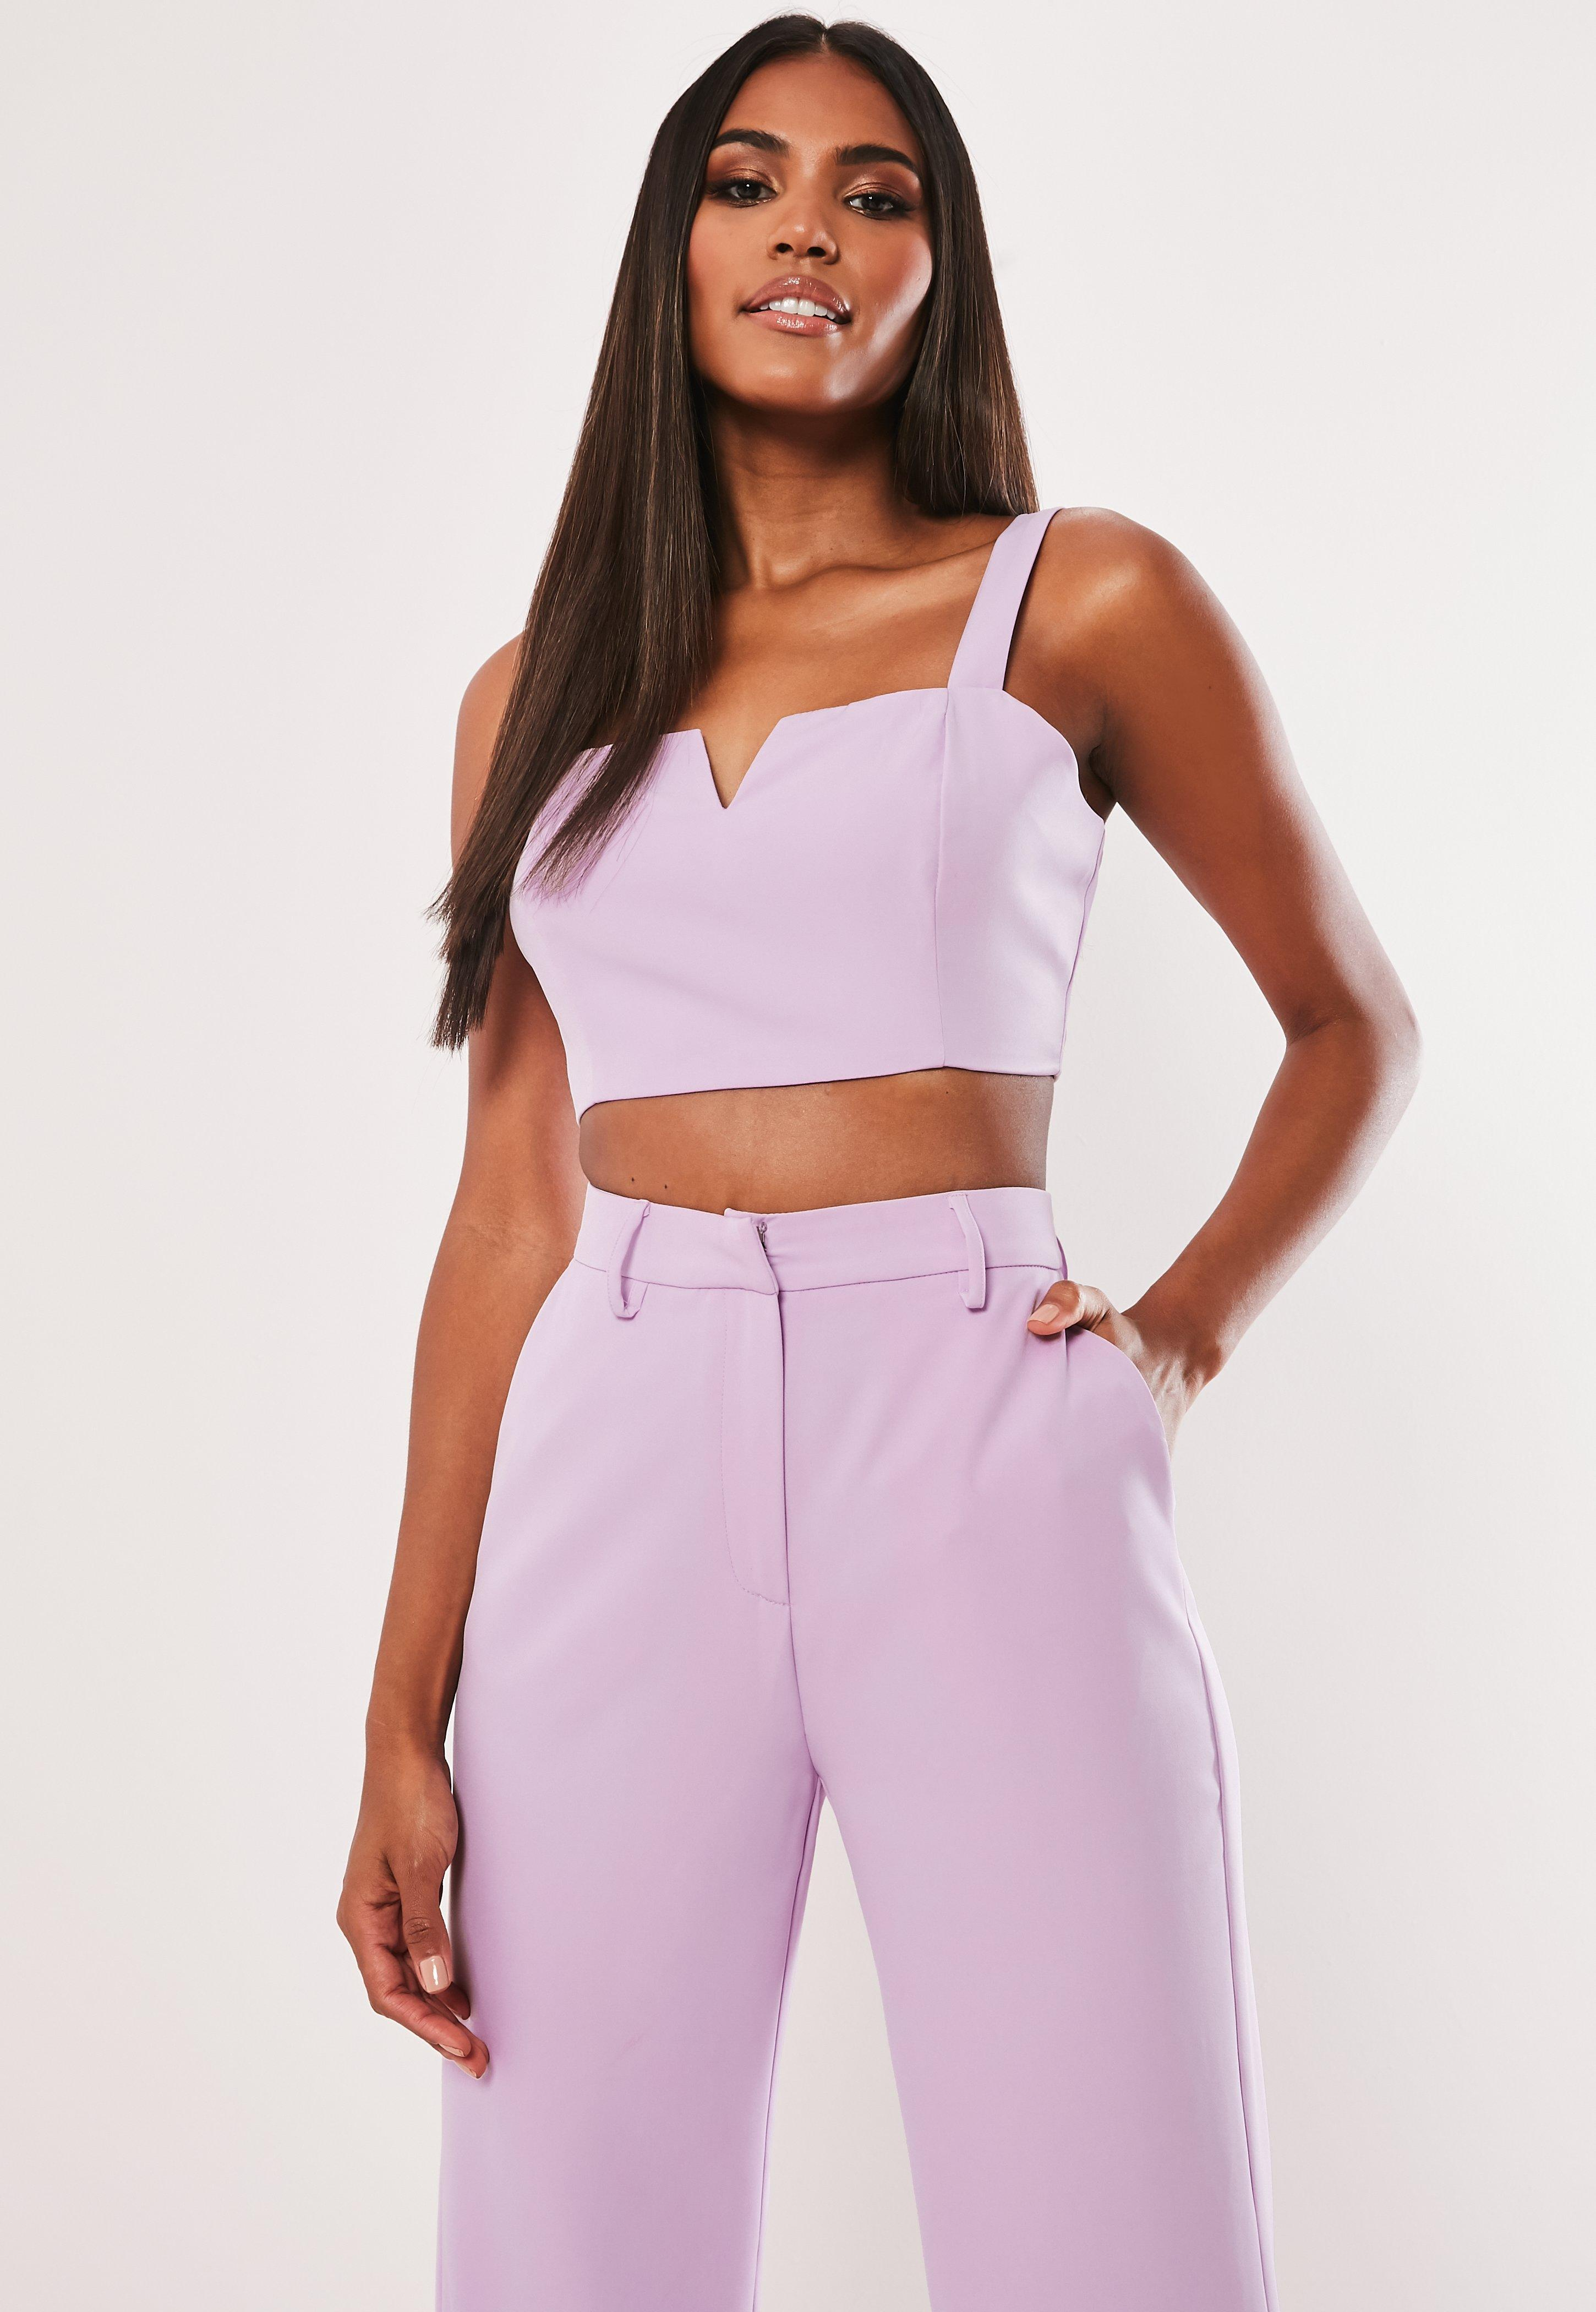 3a6689cb926 Missguided - Purple Lilac Co Ord V Neck Crop Top - Lyst. View fullscreen